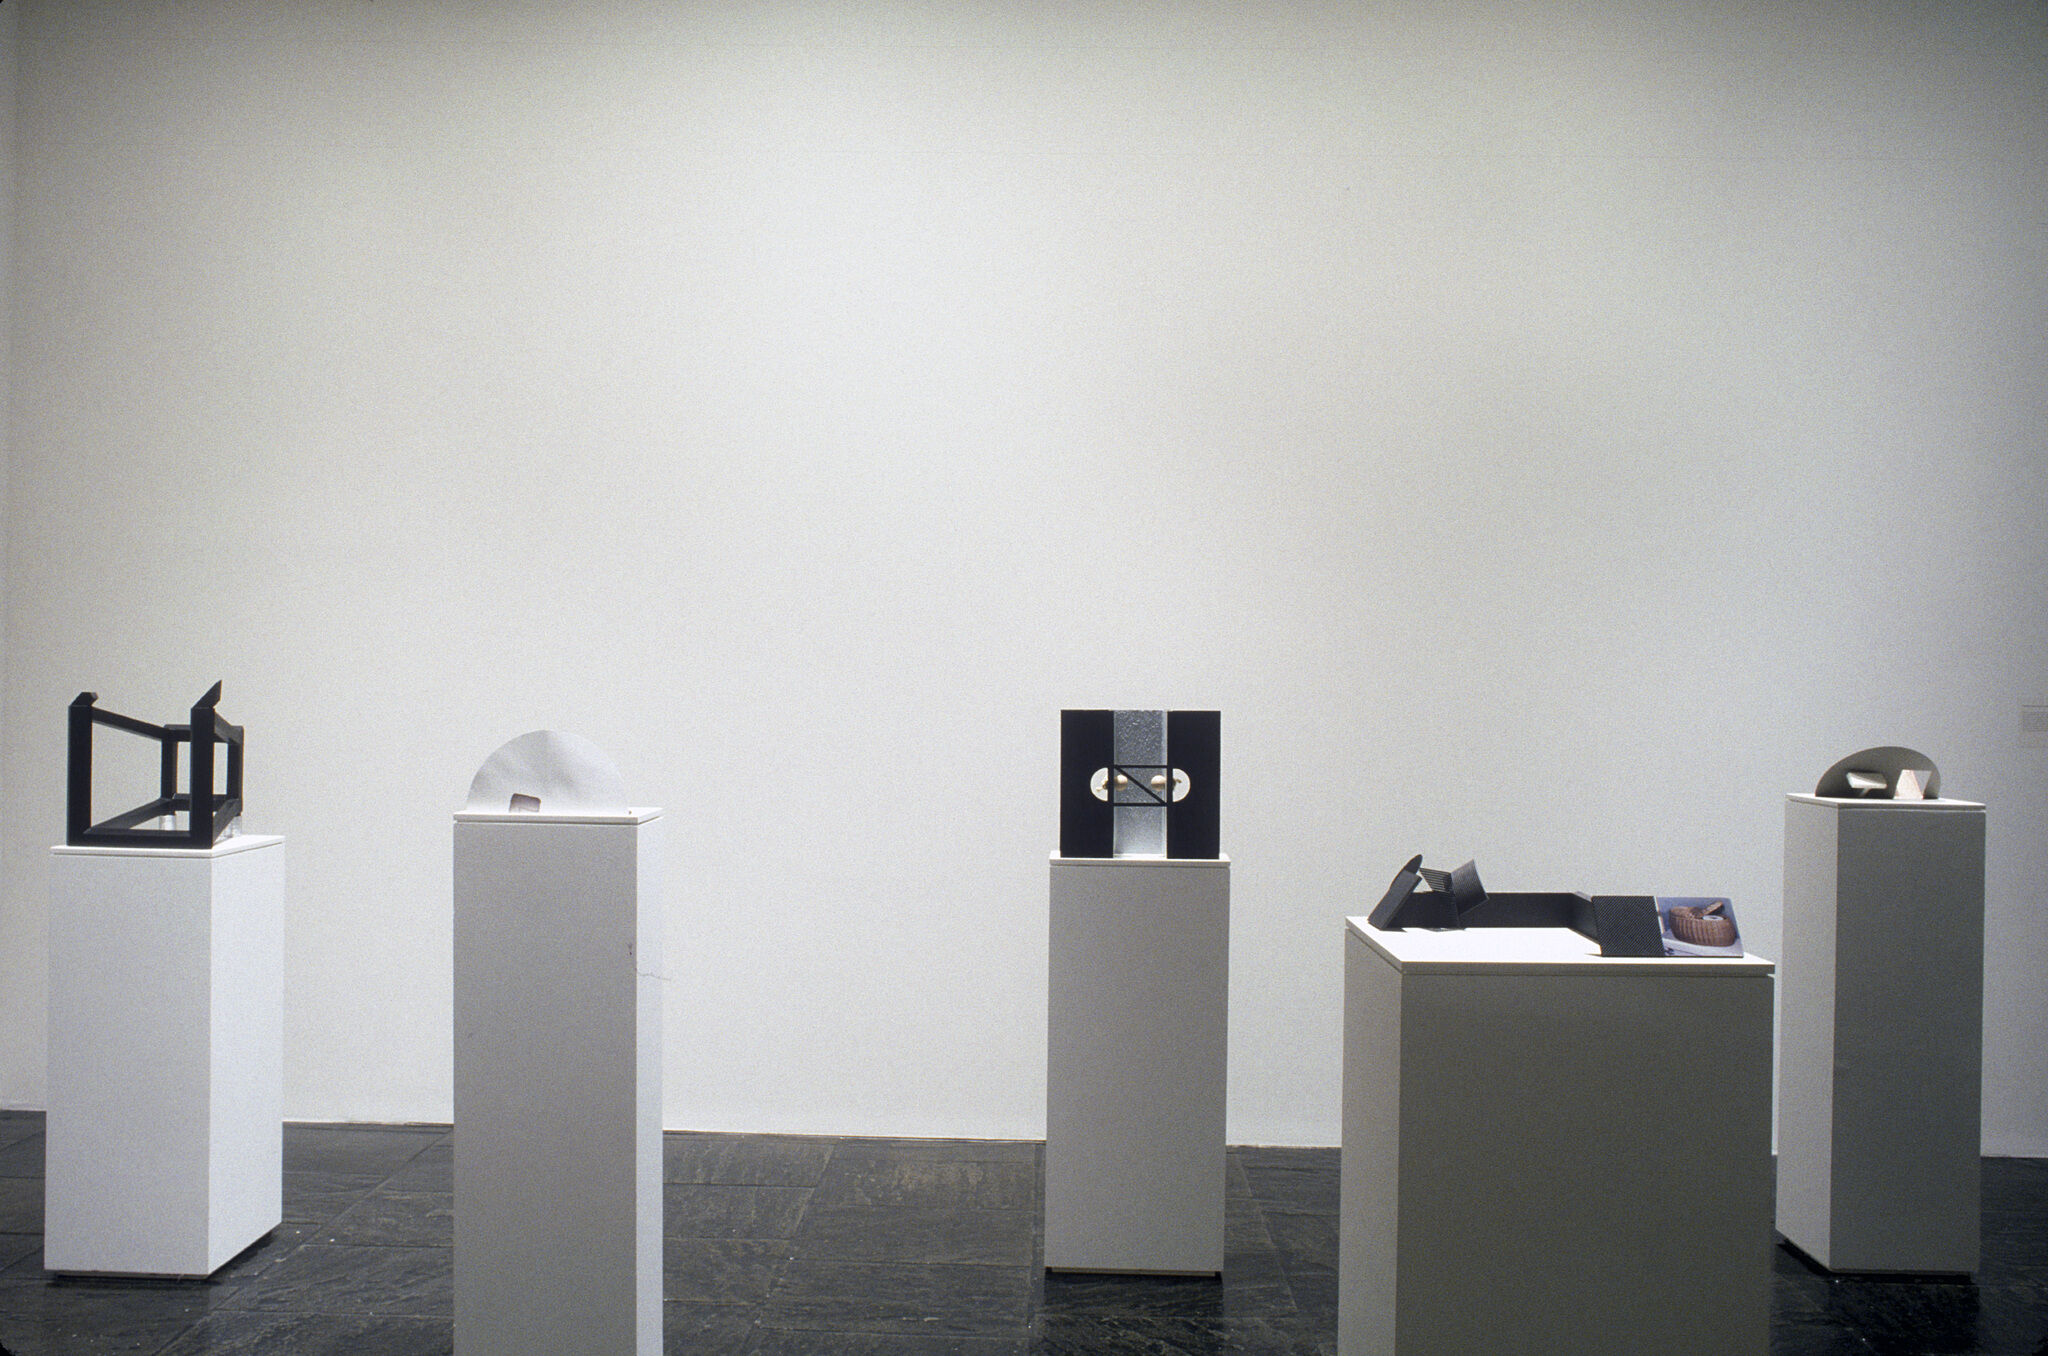 A gallery filled with white podiums displaying various sculptures by Vincent Fecteau.